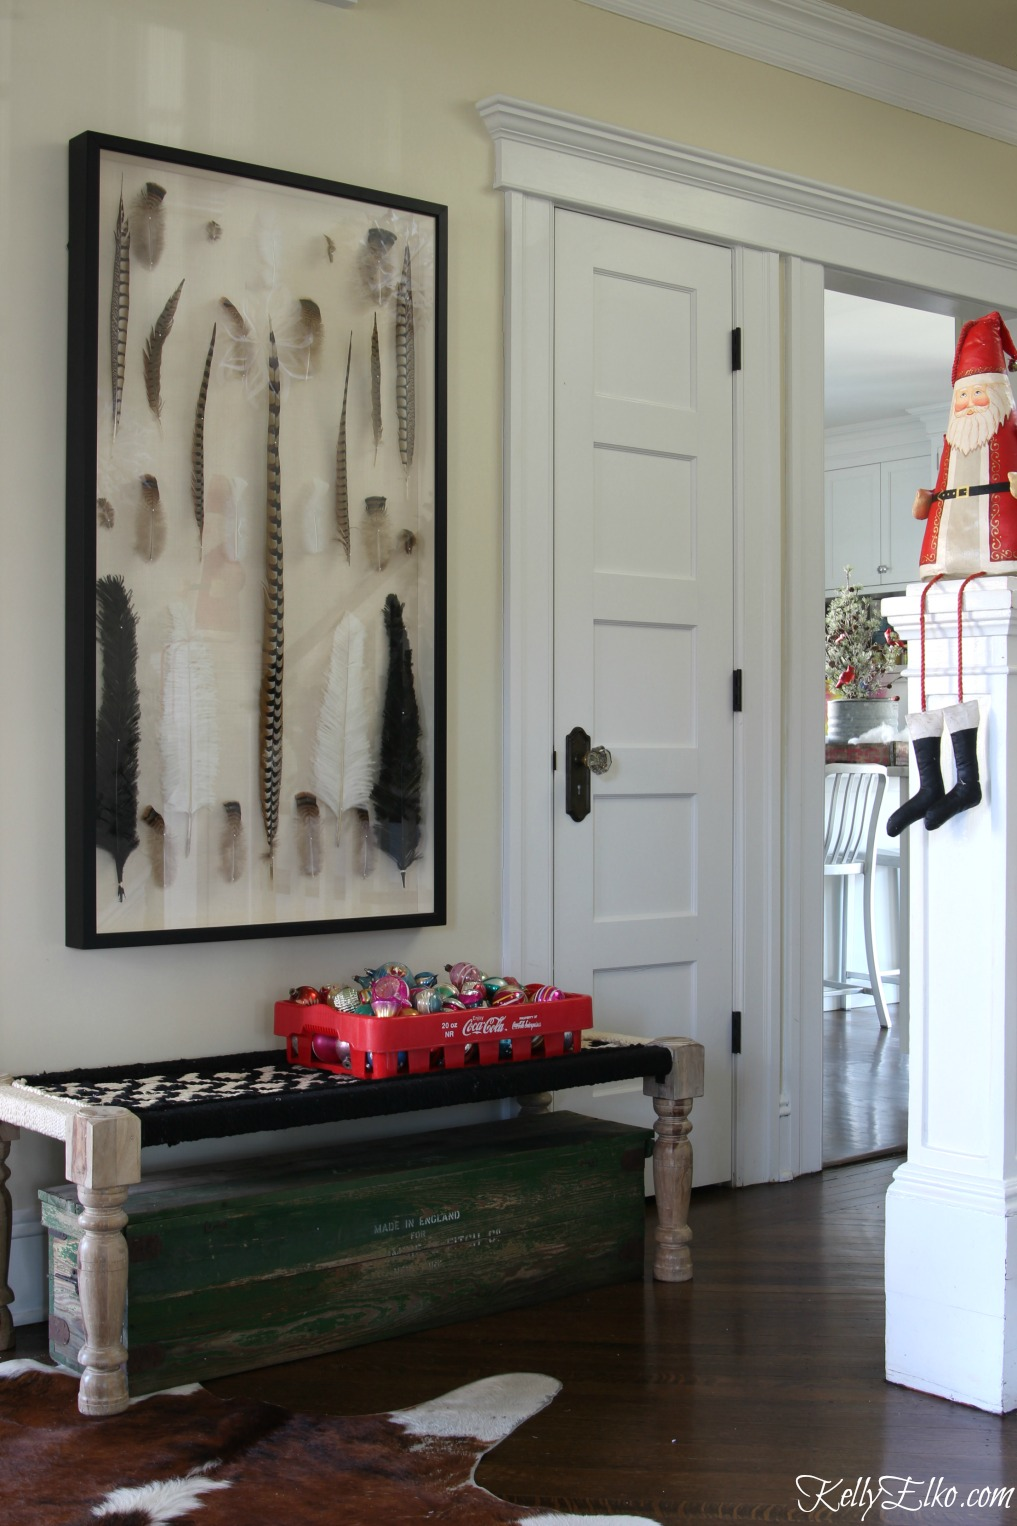 This foyer gets a festive Christmas makeover with a old soda crate filled with vintage shiny brite ornaments kellyelko.com